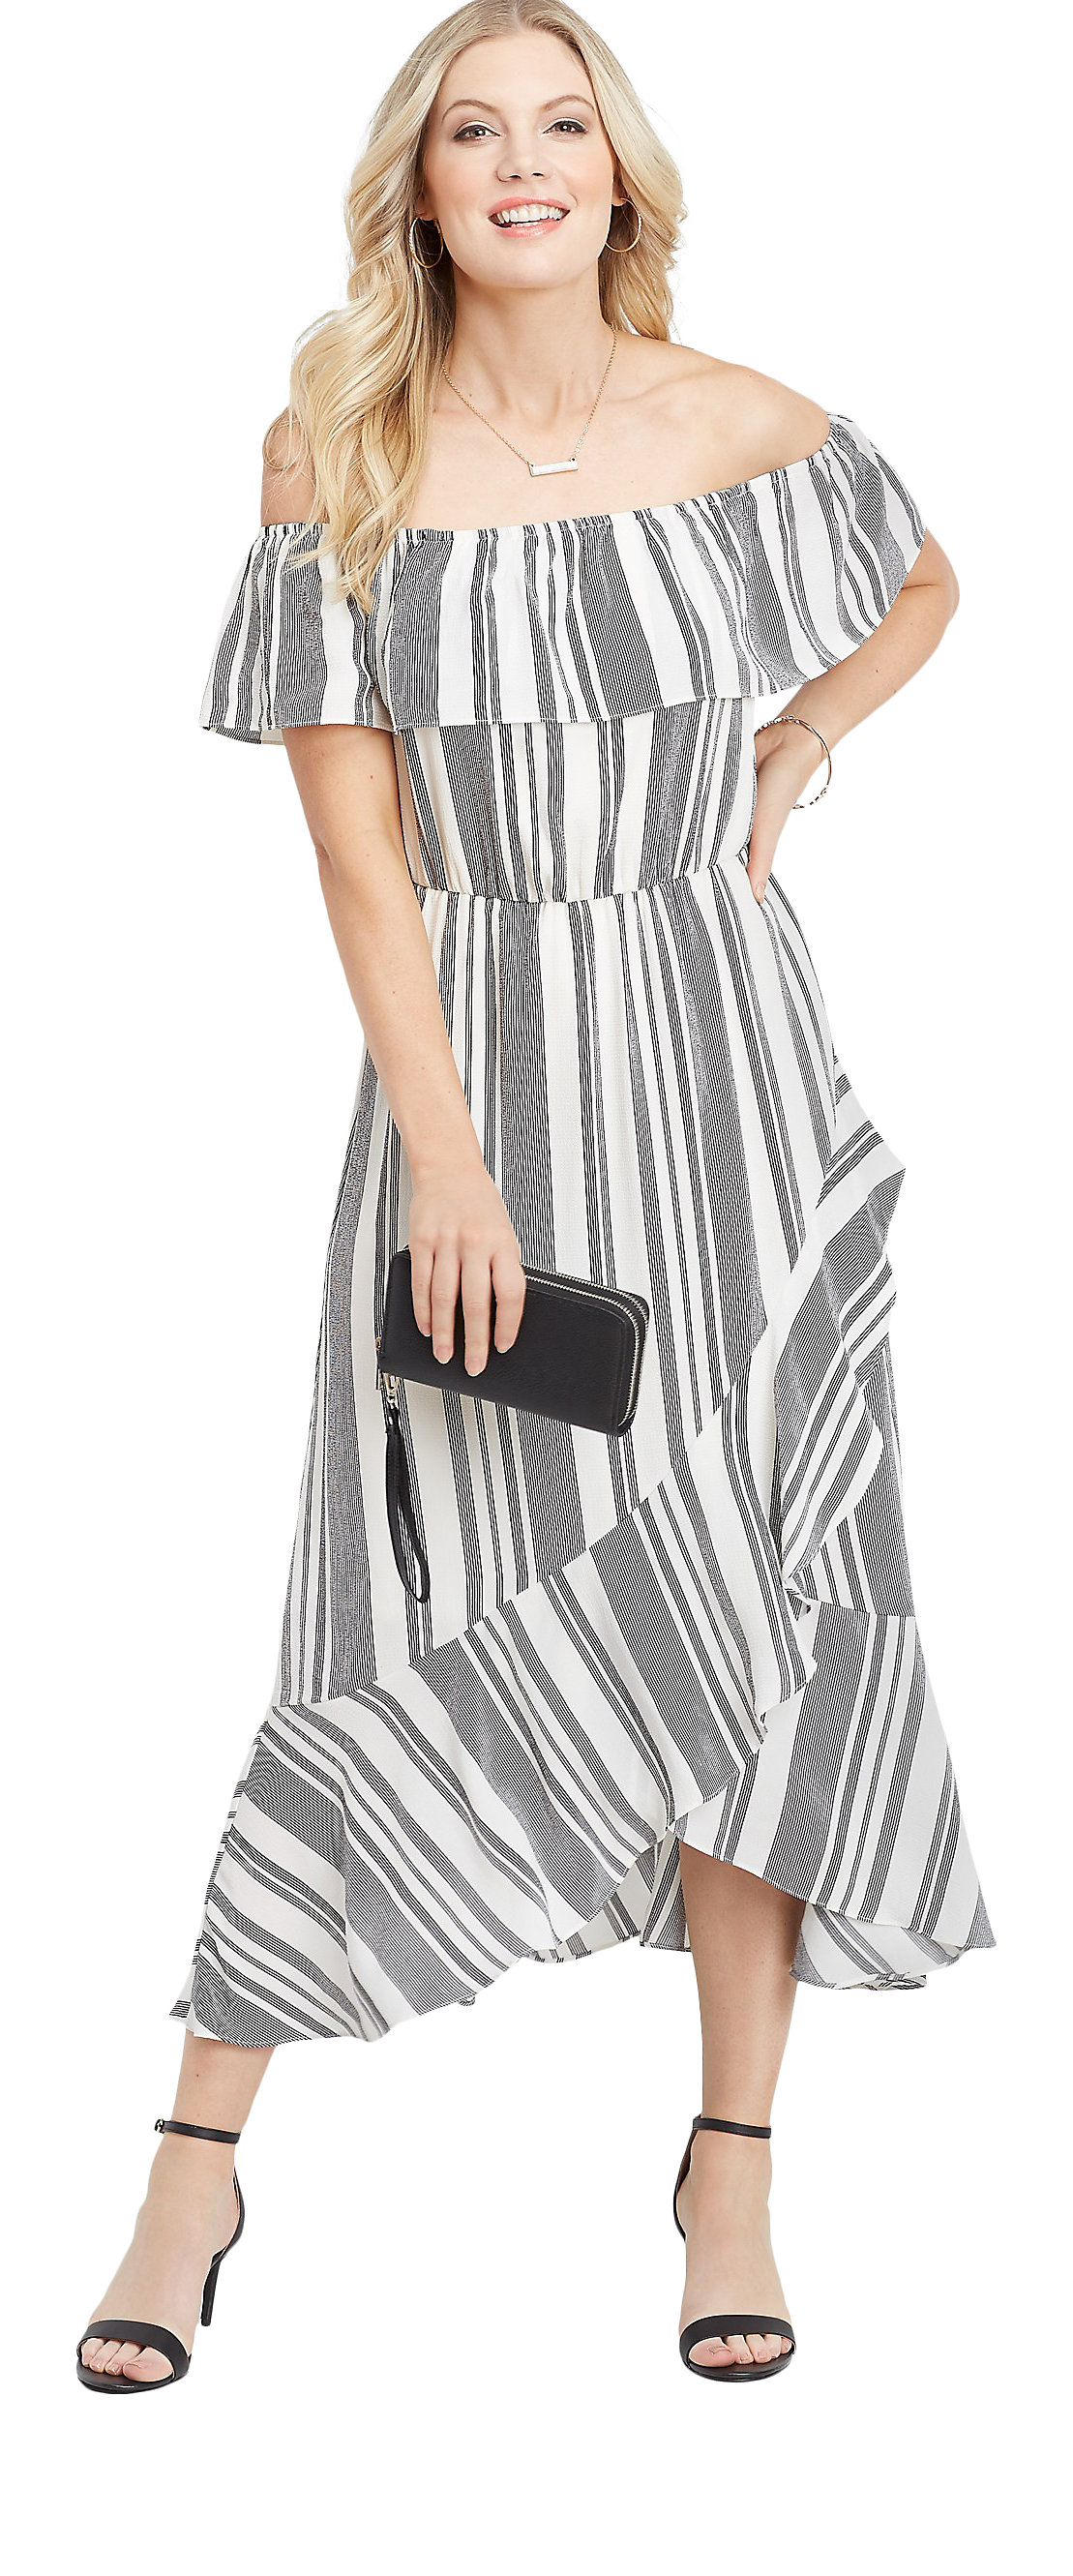 maurices Off the Shoulder Maxi Dress - Women?s Ruffled Stripe Print